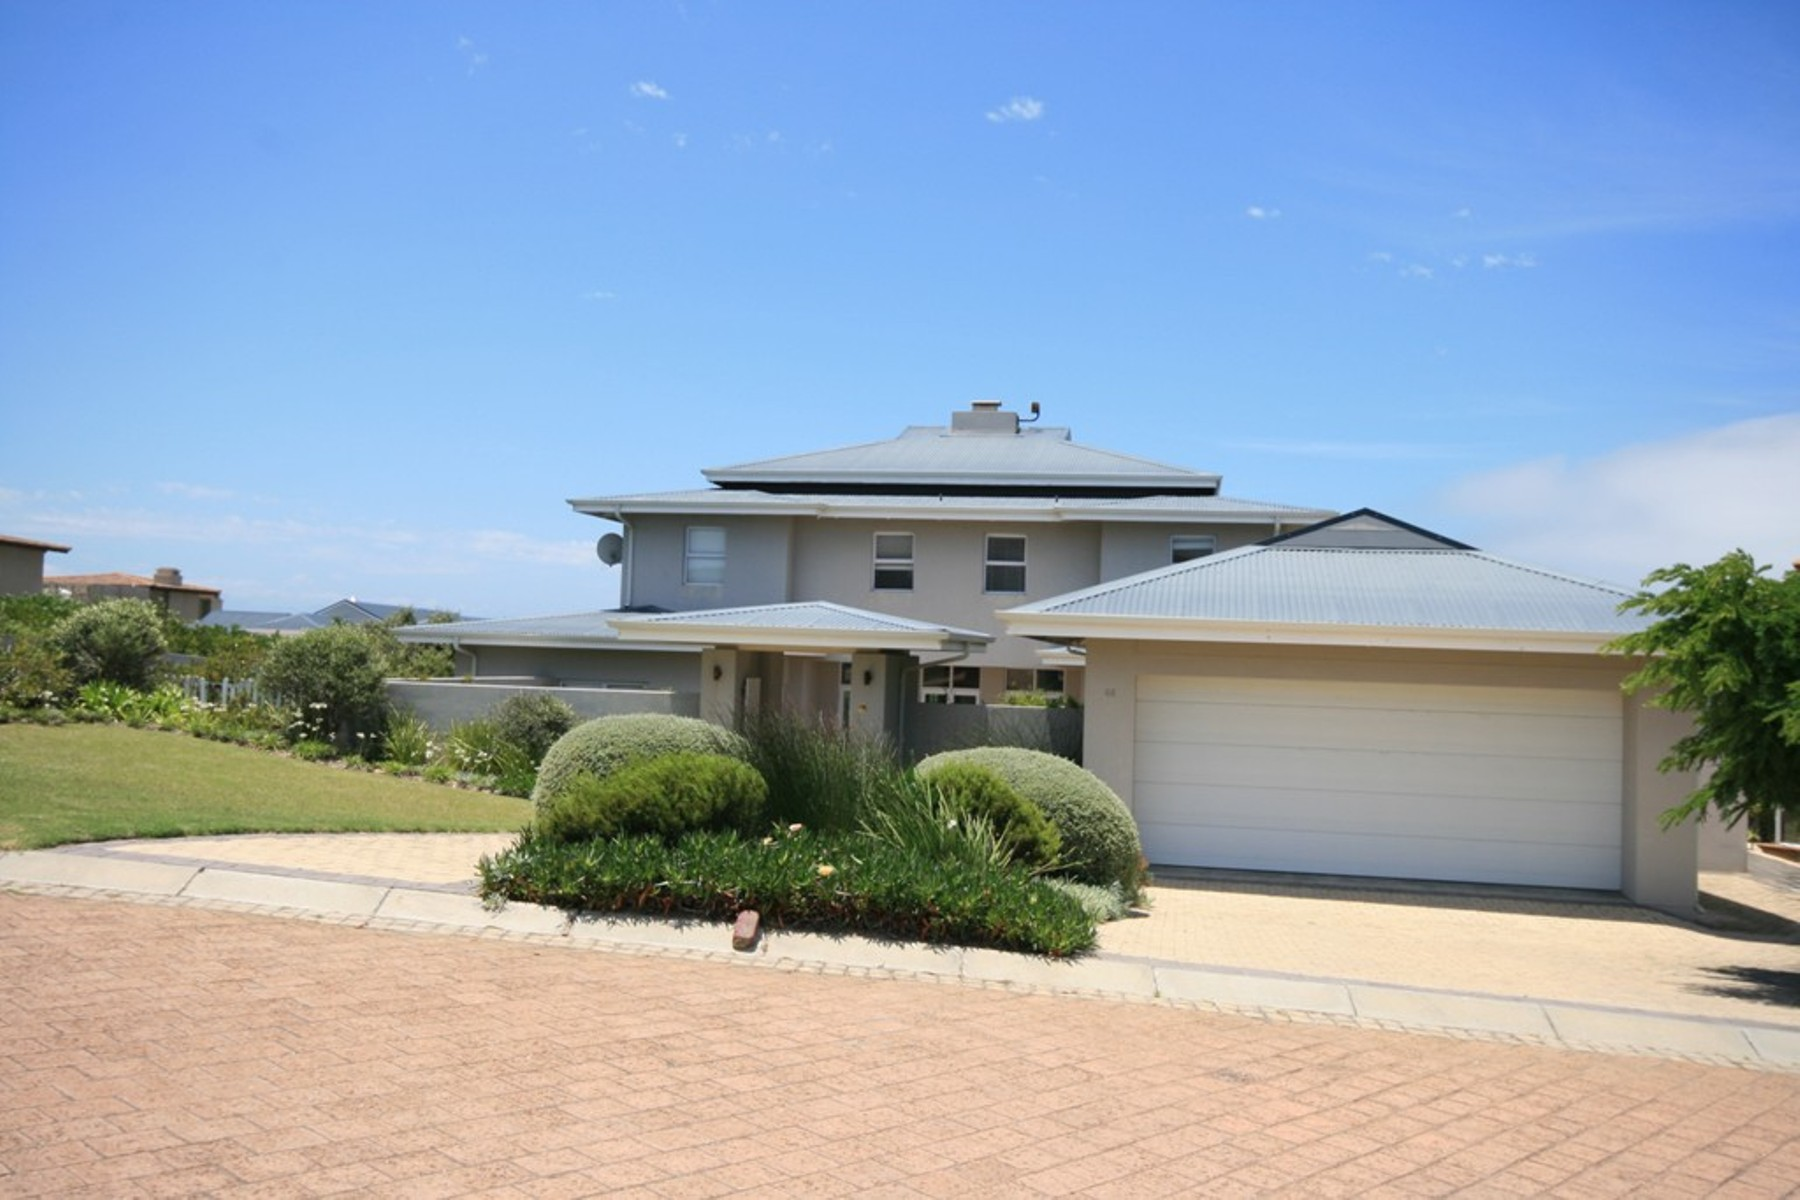 Single Family Home for Sale at Magnificent Whale Rock Ridge Home Plettenberg Bay, Western Cape 6600 South Africa